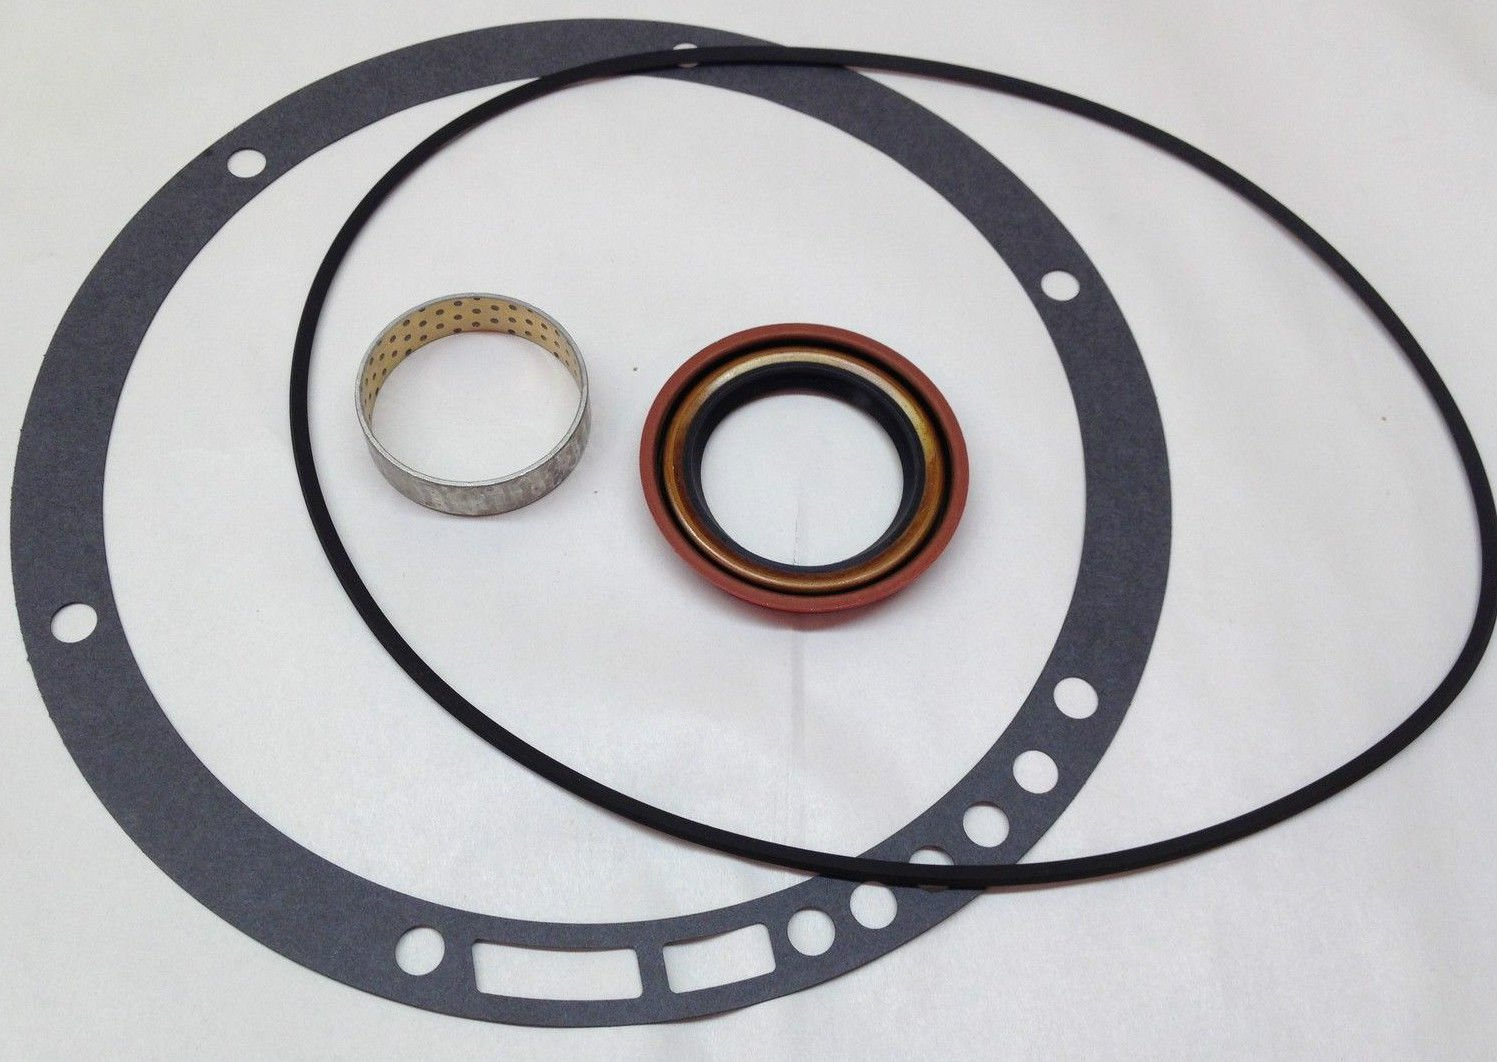 Wellington Parts Corp FRONT PUMP BUSHING SEAL KIT A518 A618 46RE 46RH 47RE 47RH 48RE TRANSMISSION